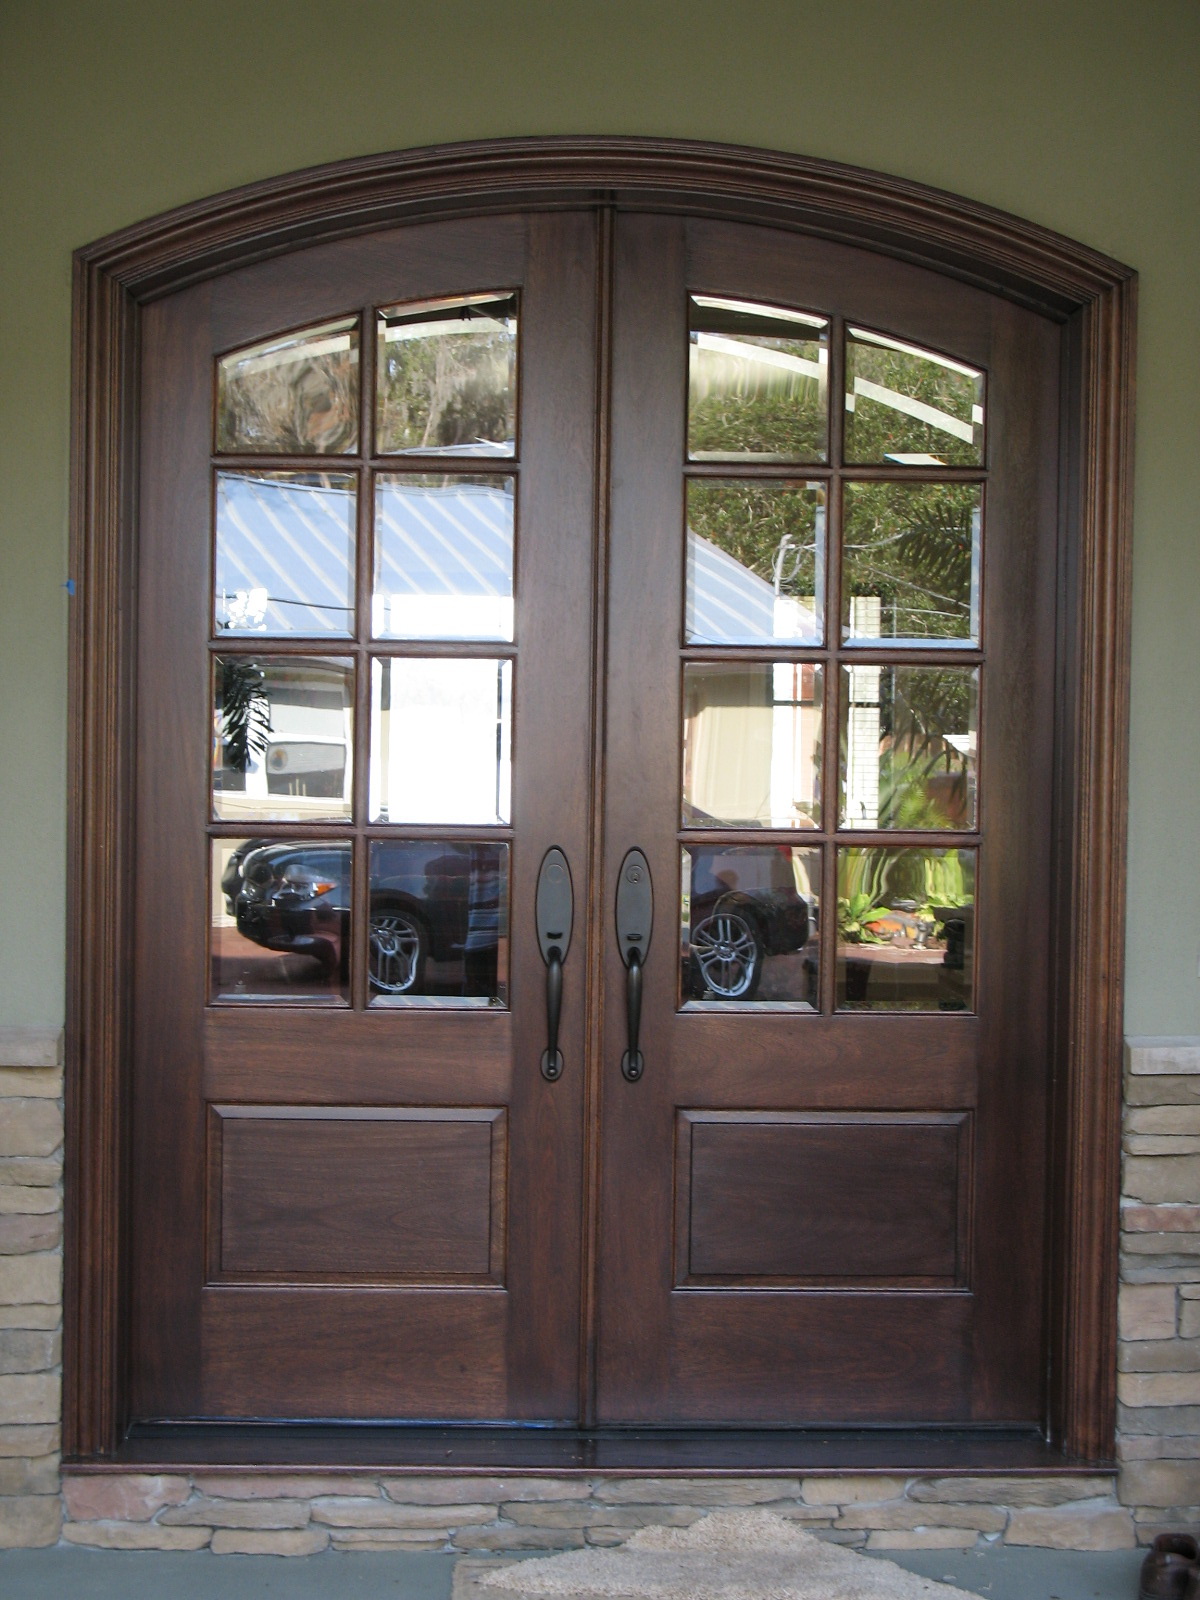 1000 images about front doors on pinterest for Exterior front double doors